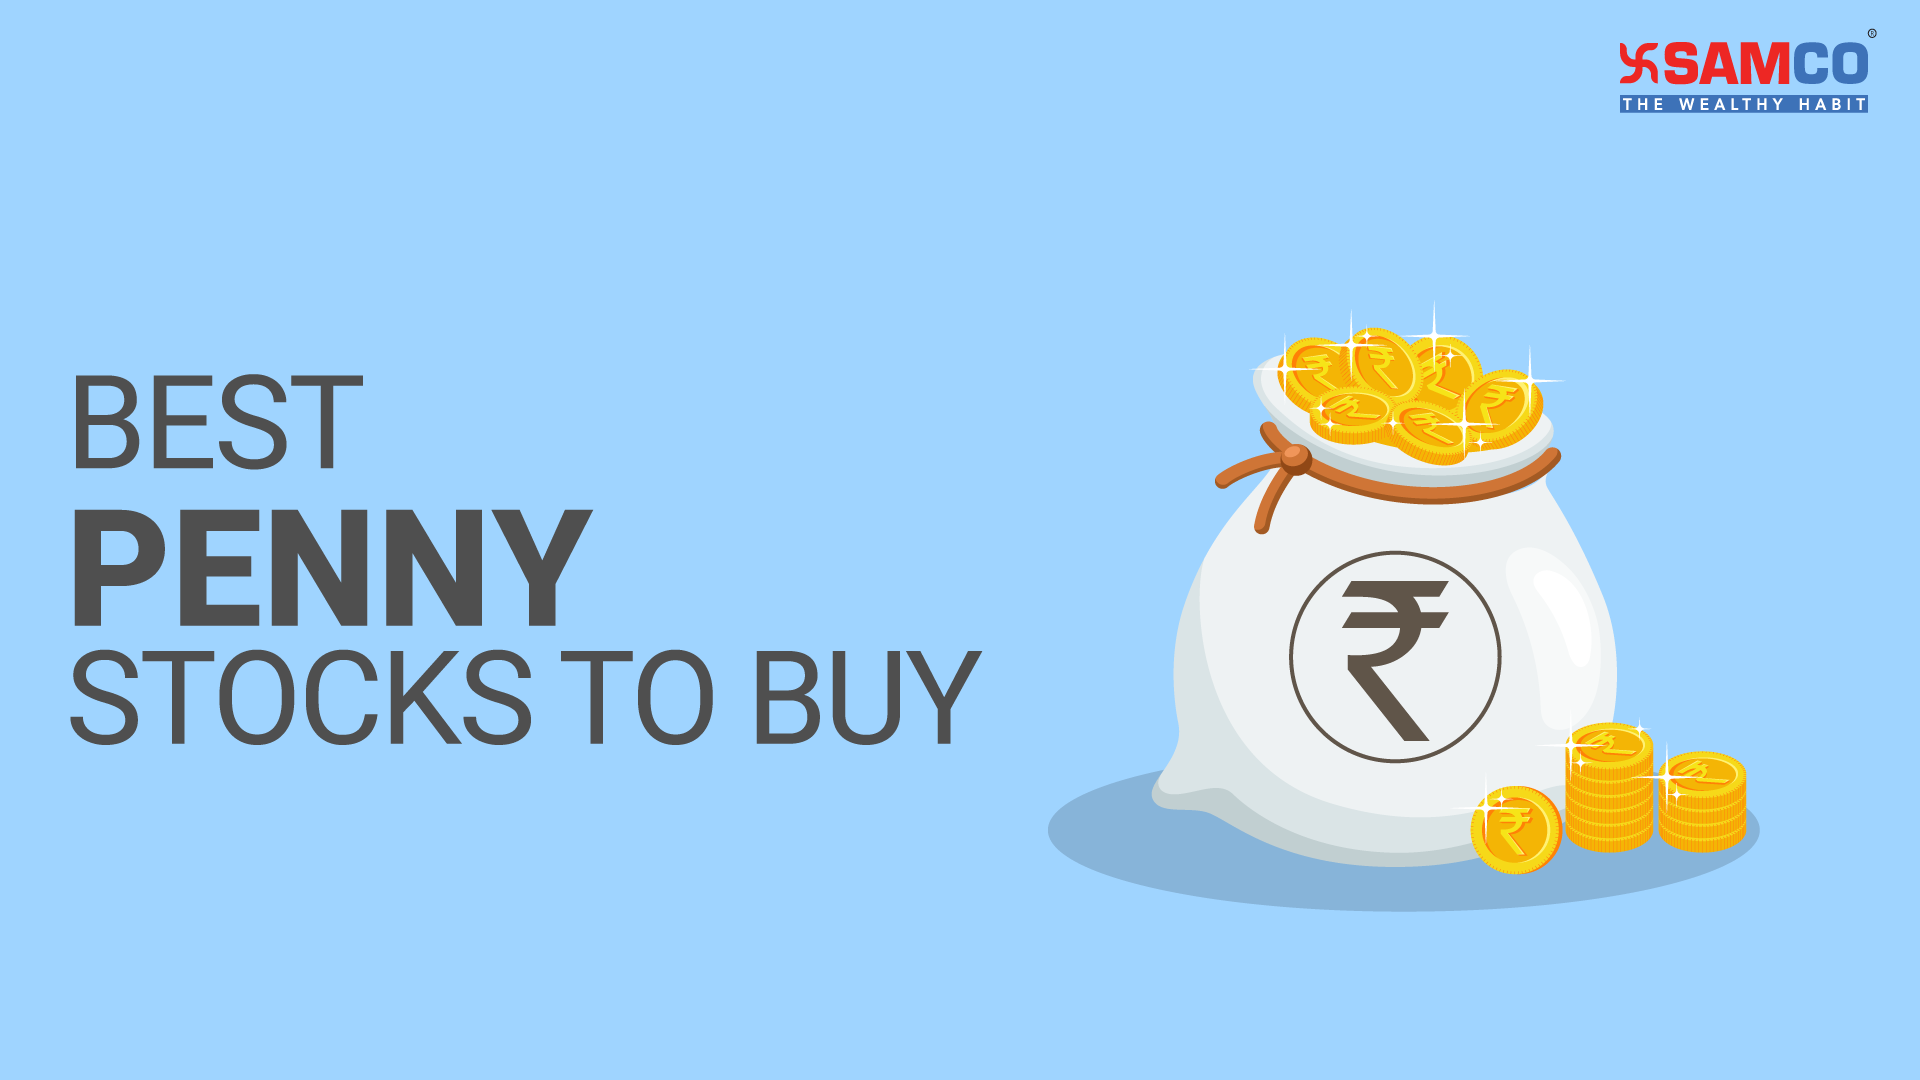 Best Penny Stocks to Buy Now - How to Analyse Best Penny Stocks